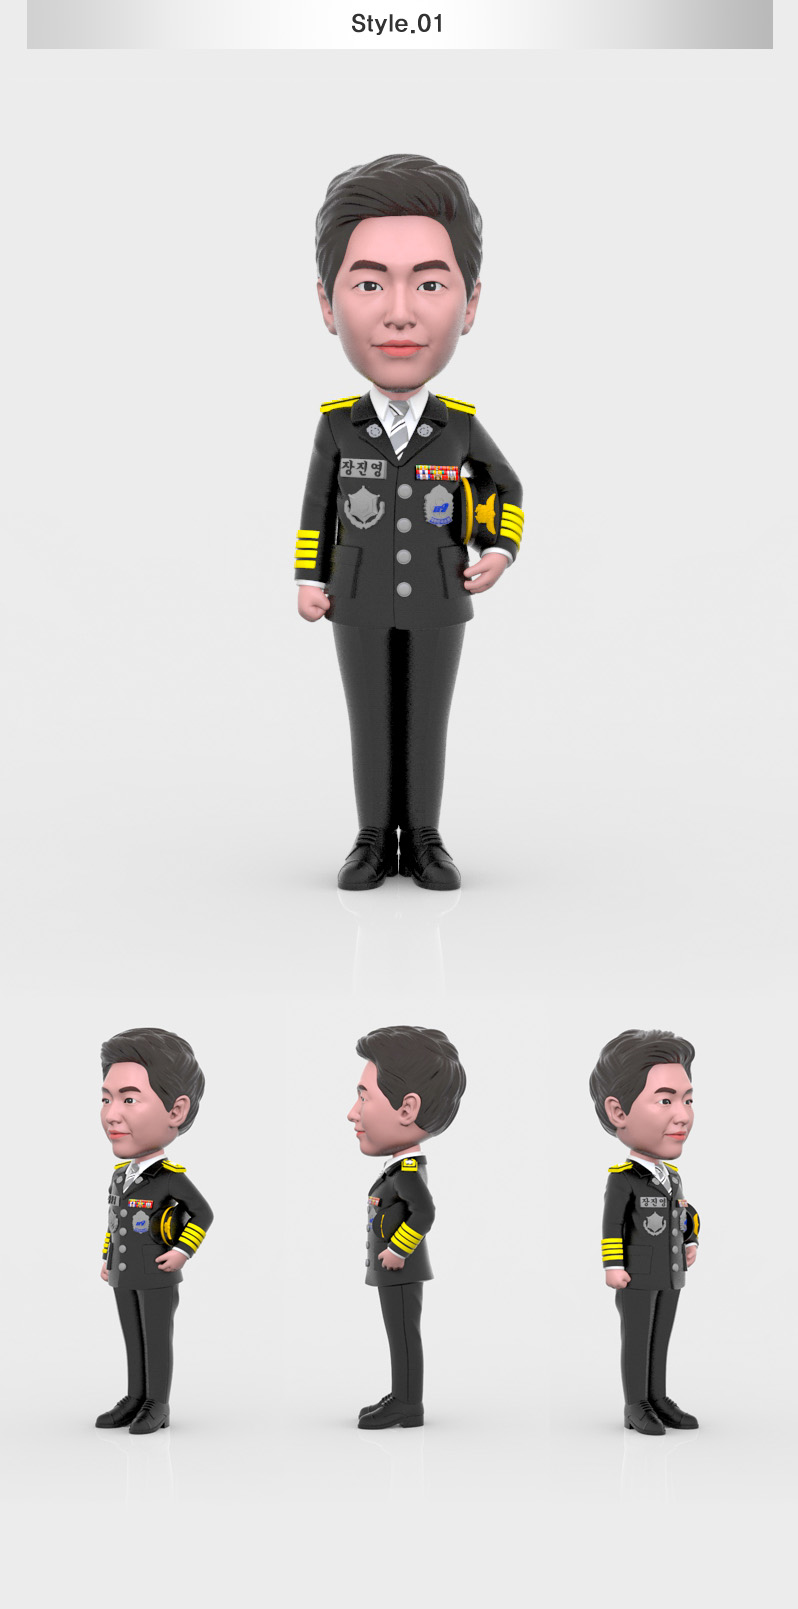 firefighter_pose01